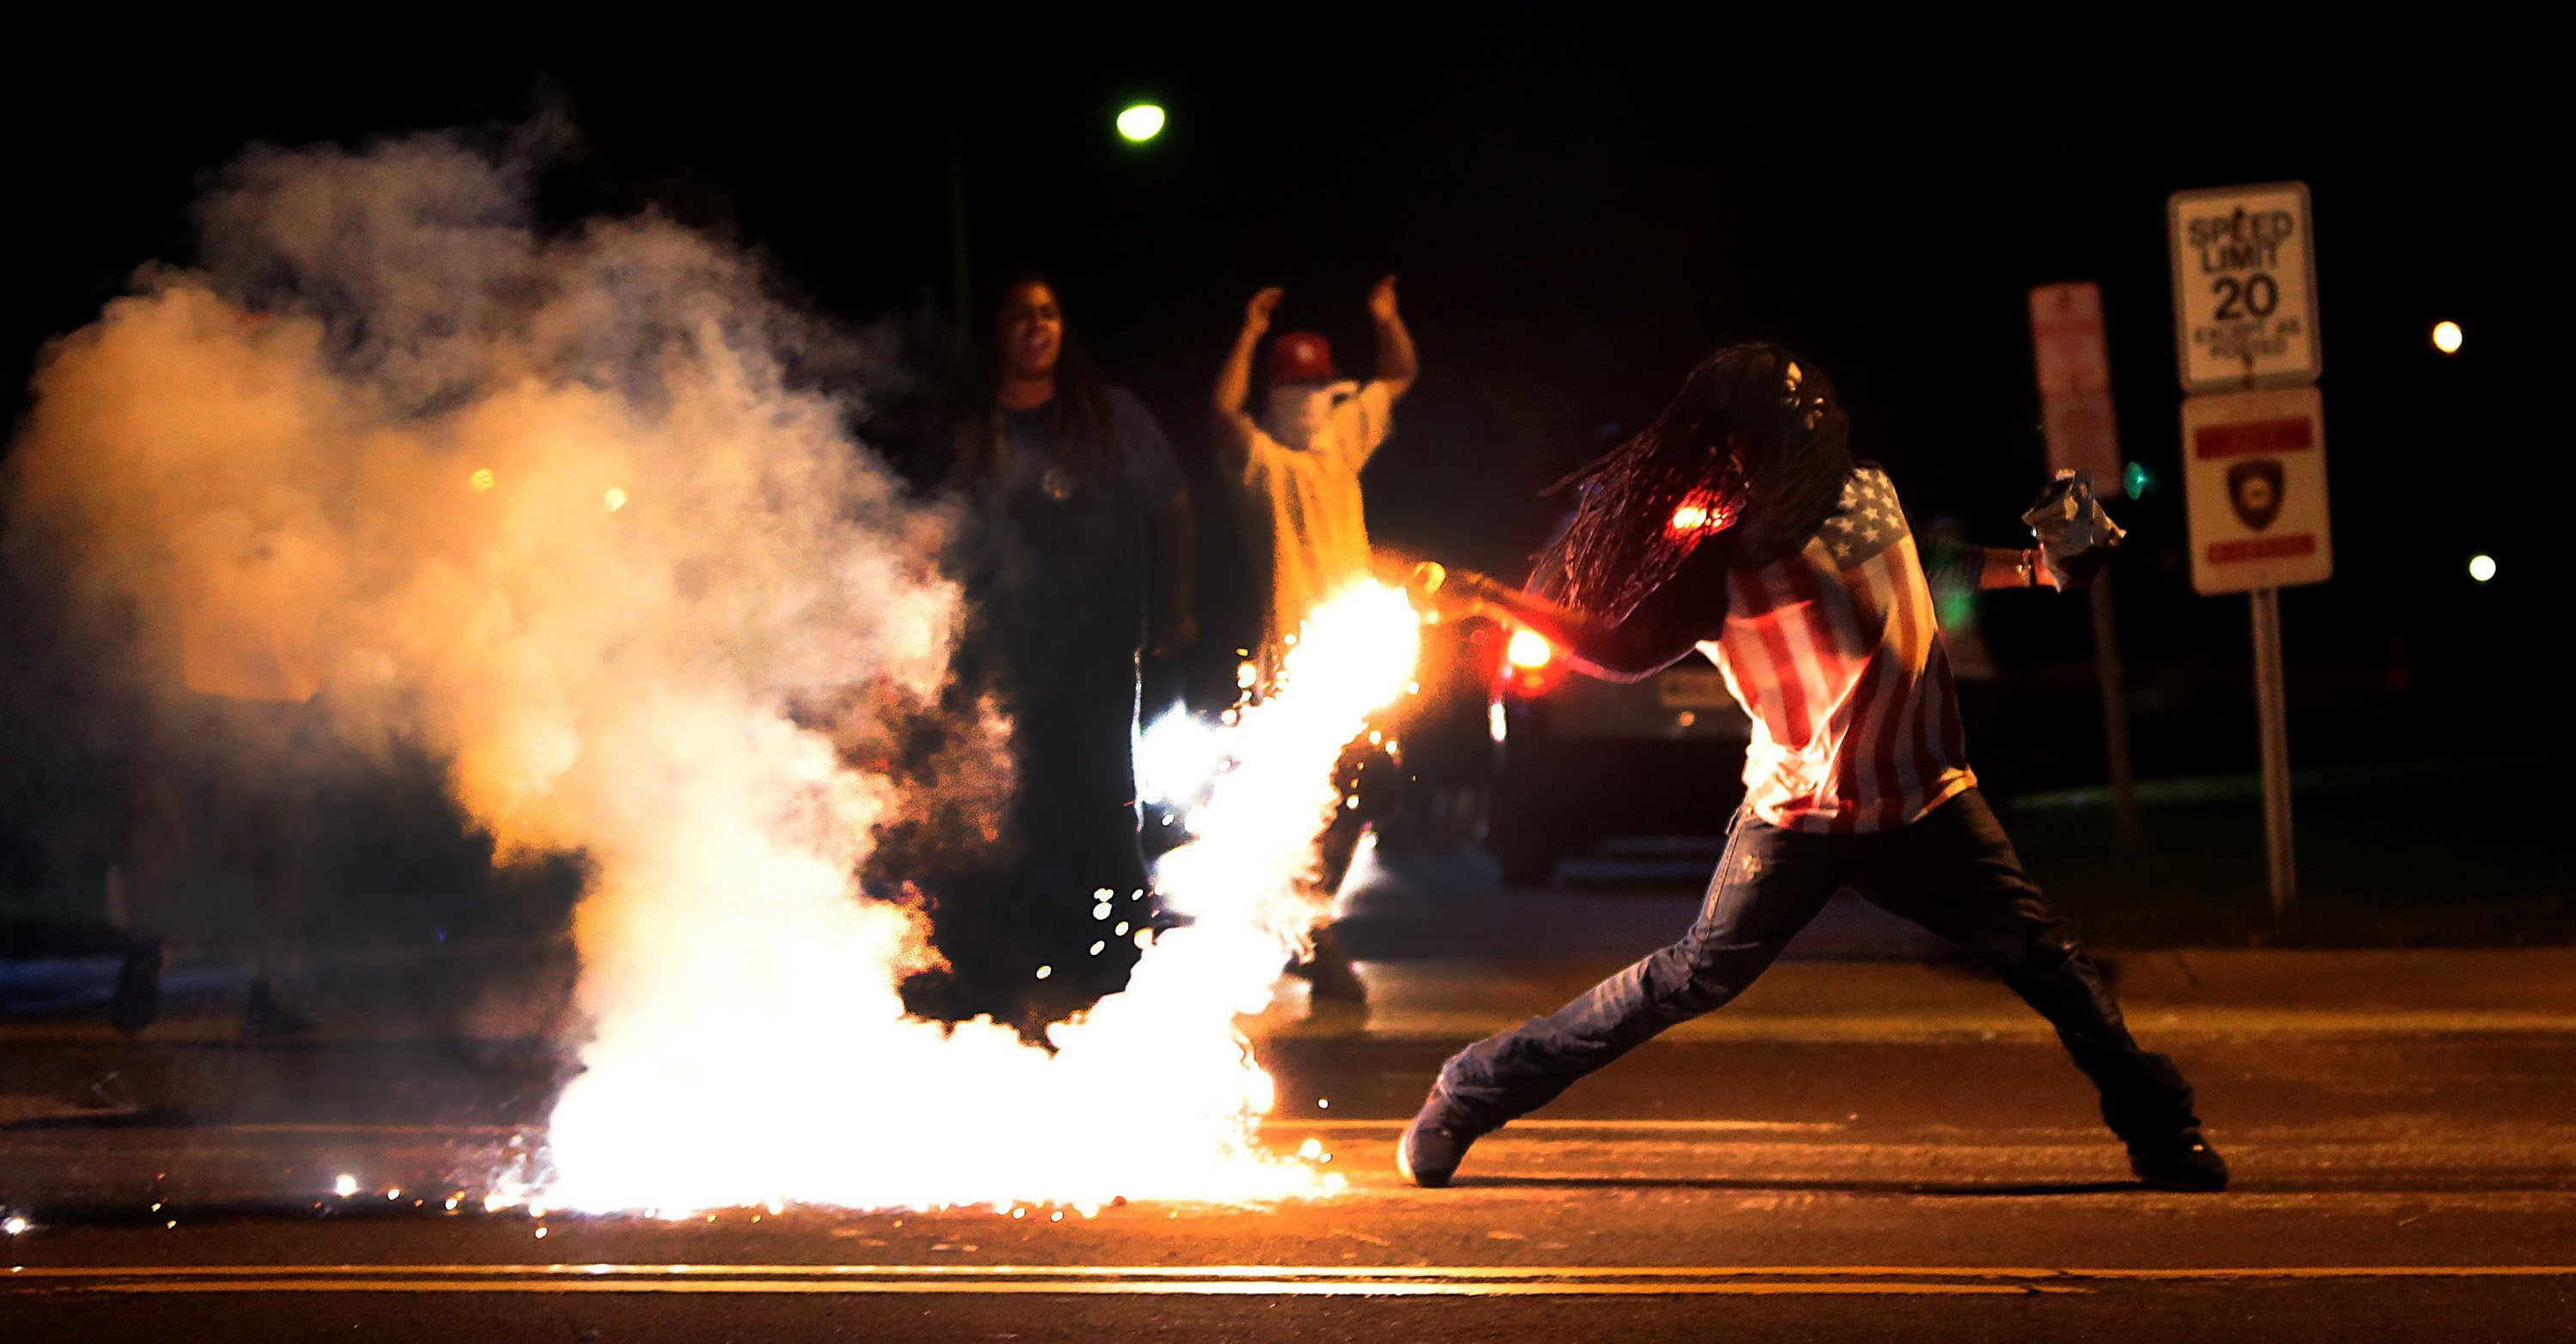 A demonstrator throws back a tear gas container after tactical officers worked to break up a group of bystanders on Chambers Road near West Florissant in Ferguson on  Aug. 13, 2014.